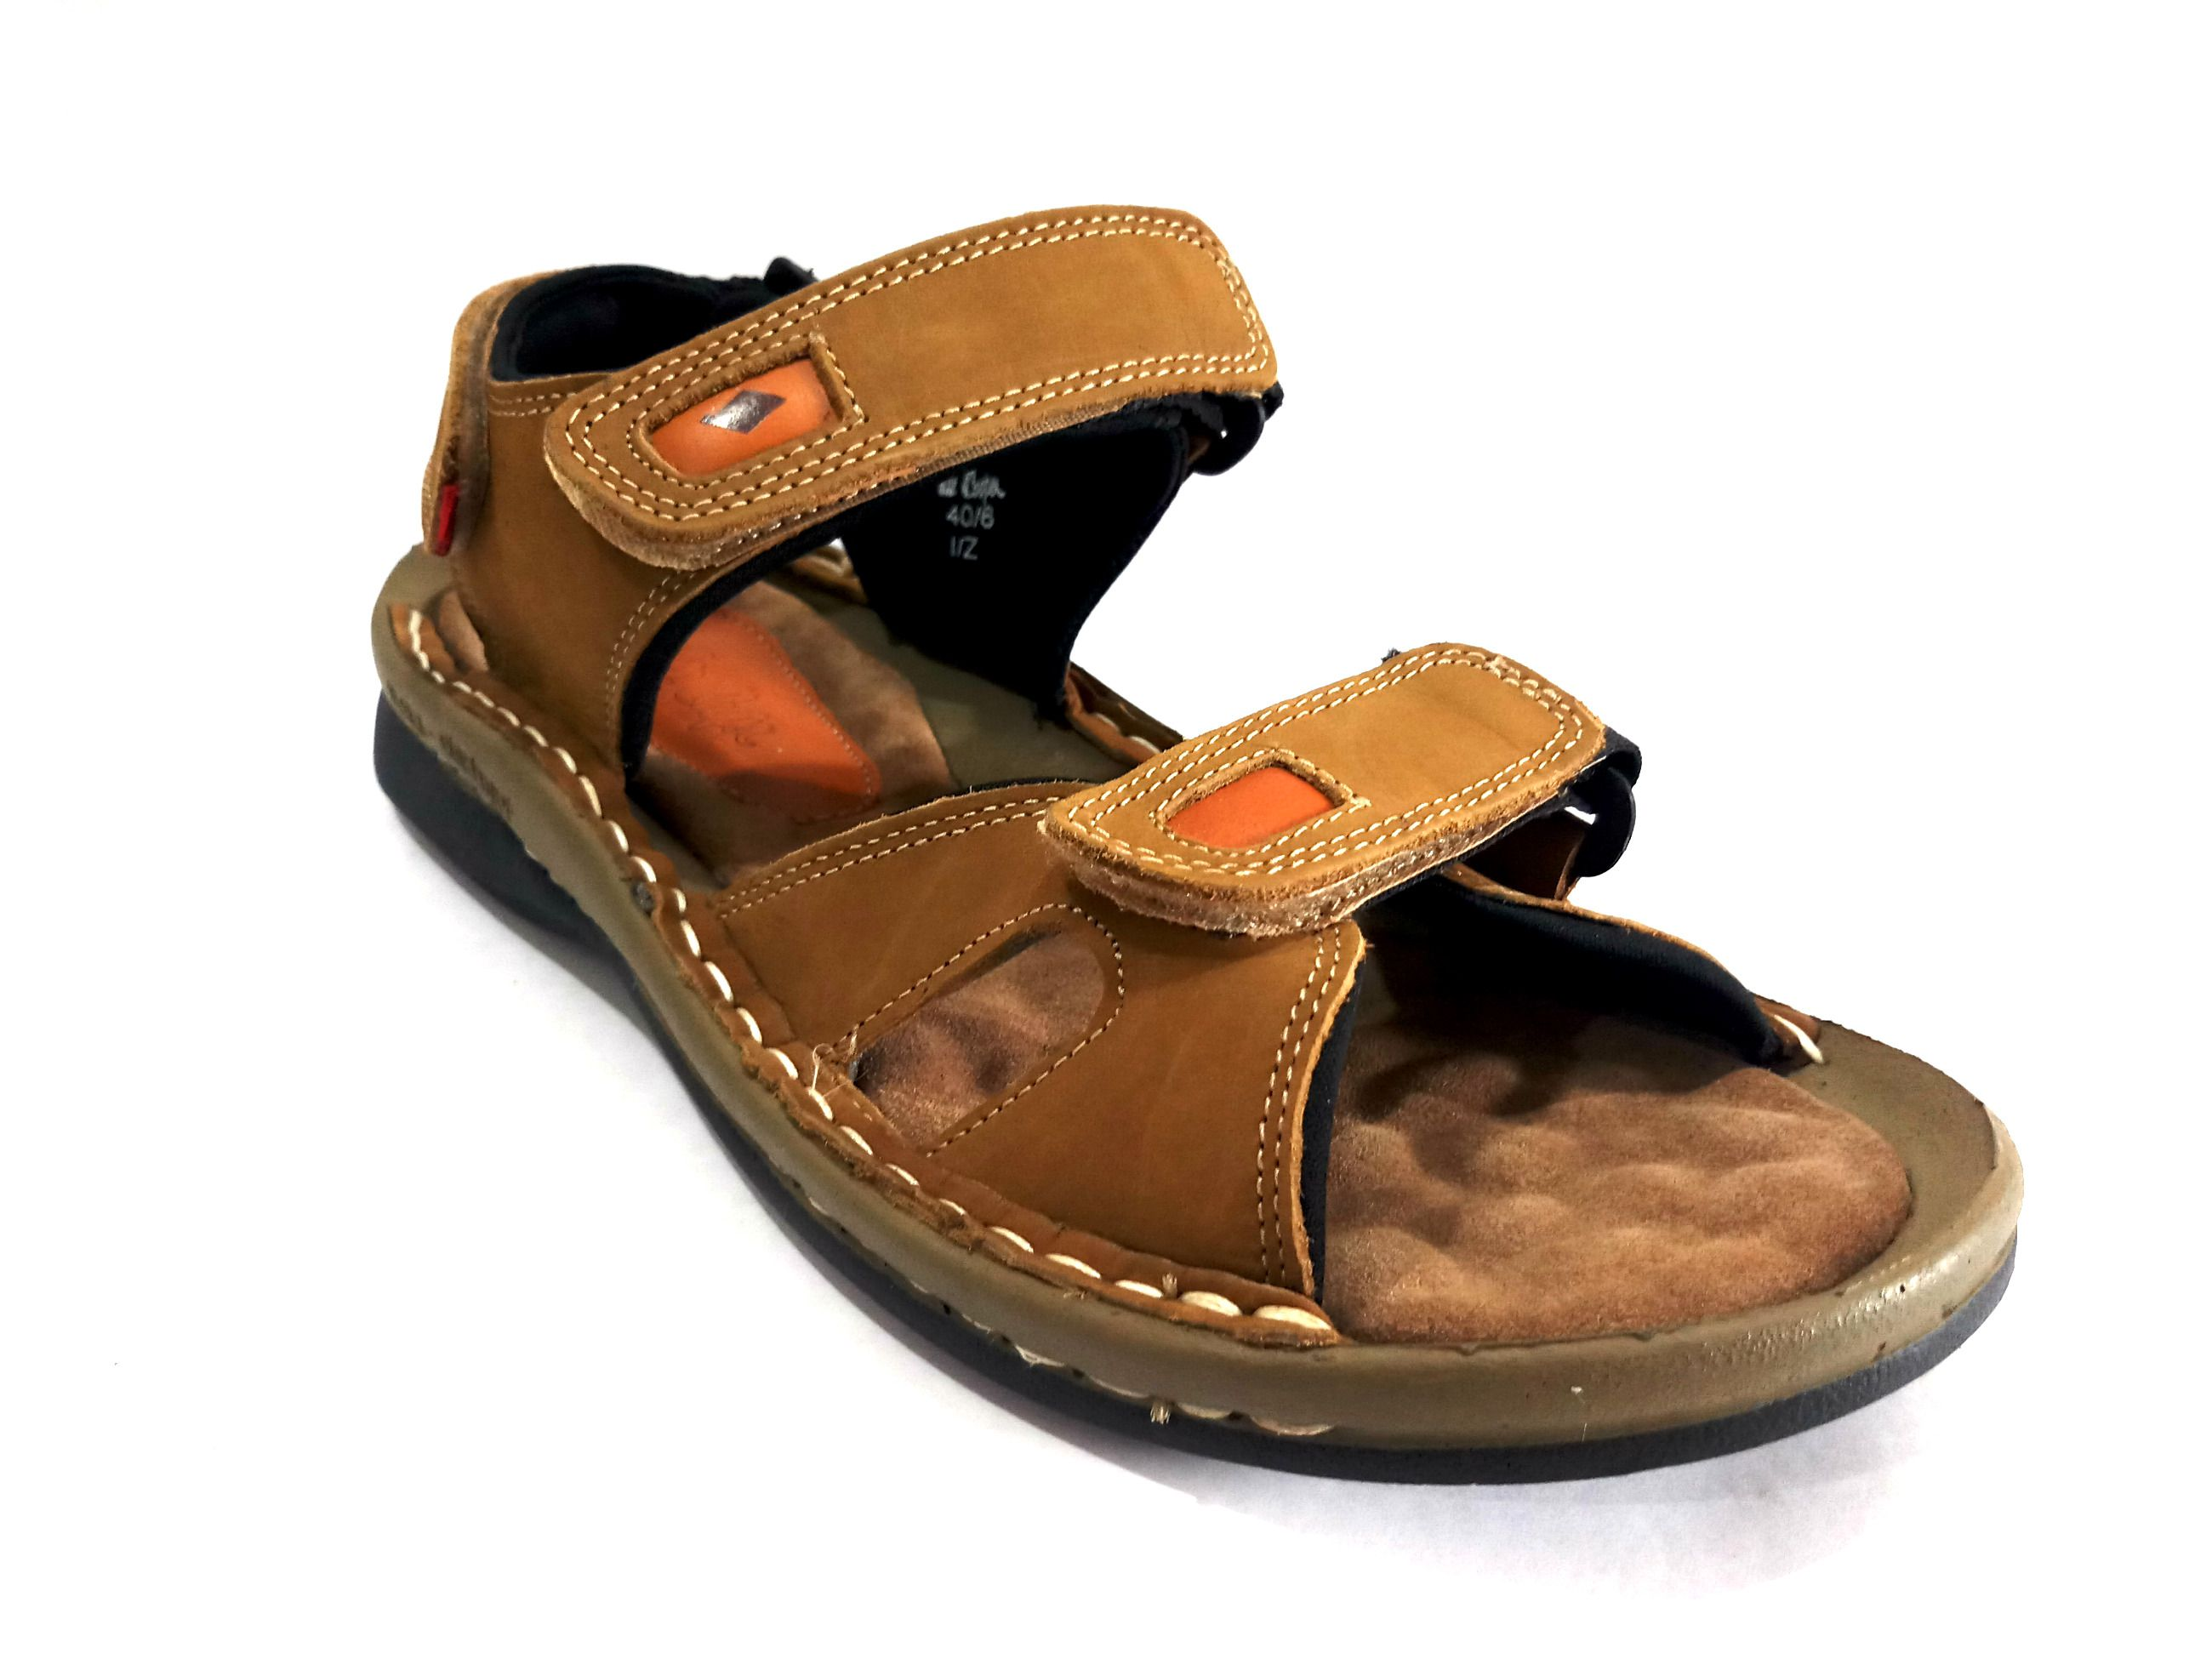 cd3cb3742e4be Lee cooper LC8766 OLIVEP1 Bronze Sandals Price in India- Buy Lee cooper  LC8766 OLIVEP1 Bronze Sandals Online at Snapdeal